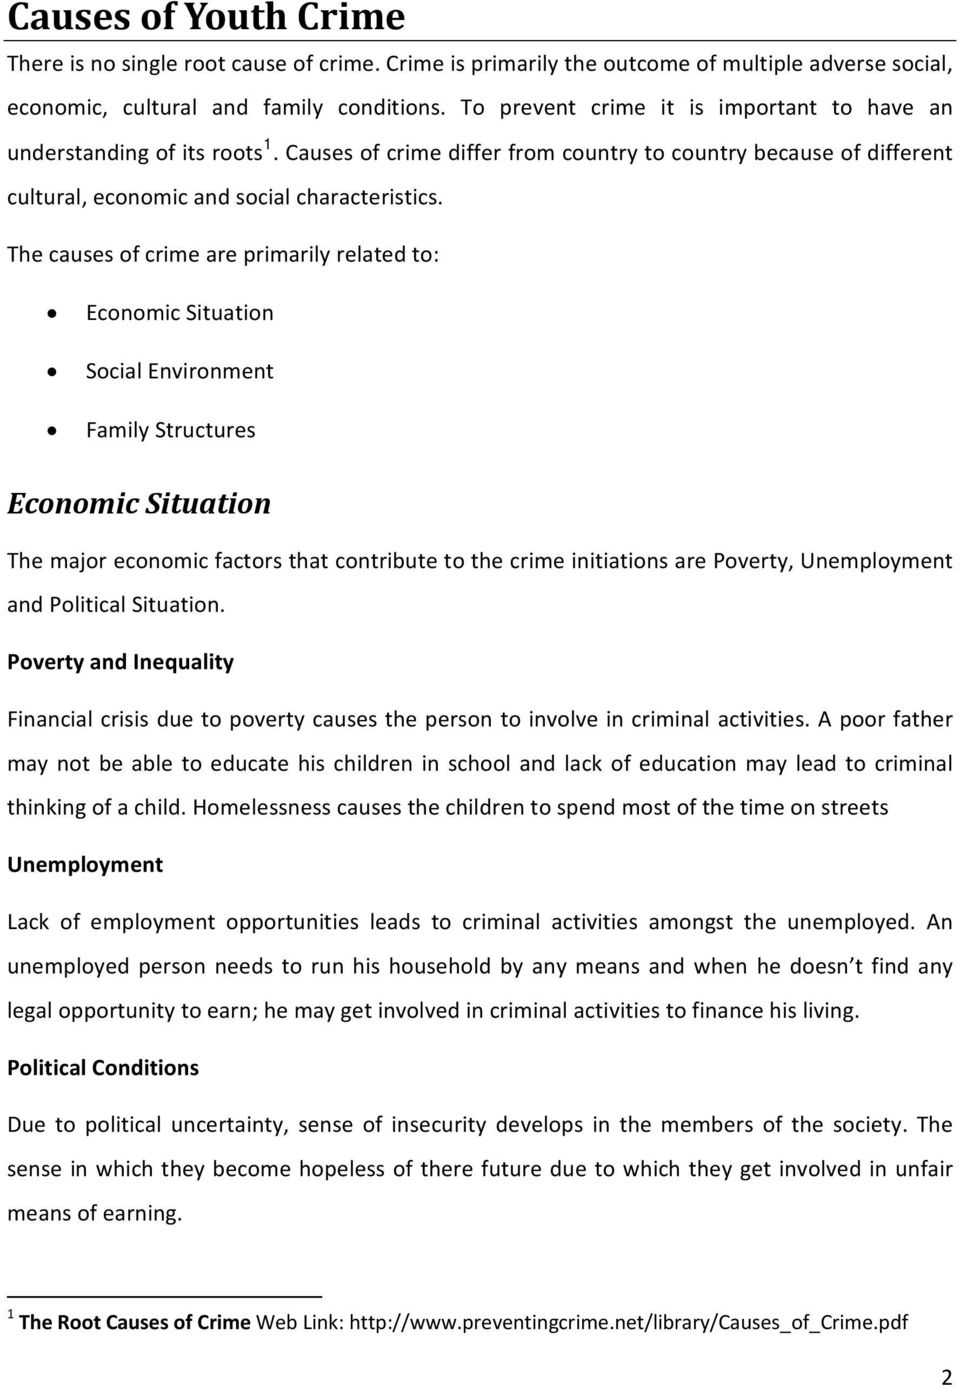 youth crime causes and remedies pdf the causes of crime are primarily related to economic situation social environment family structures economic